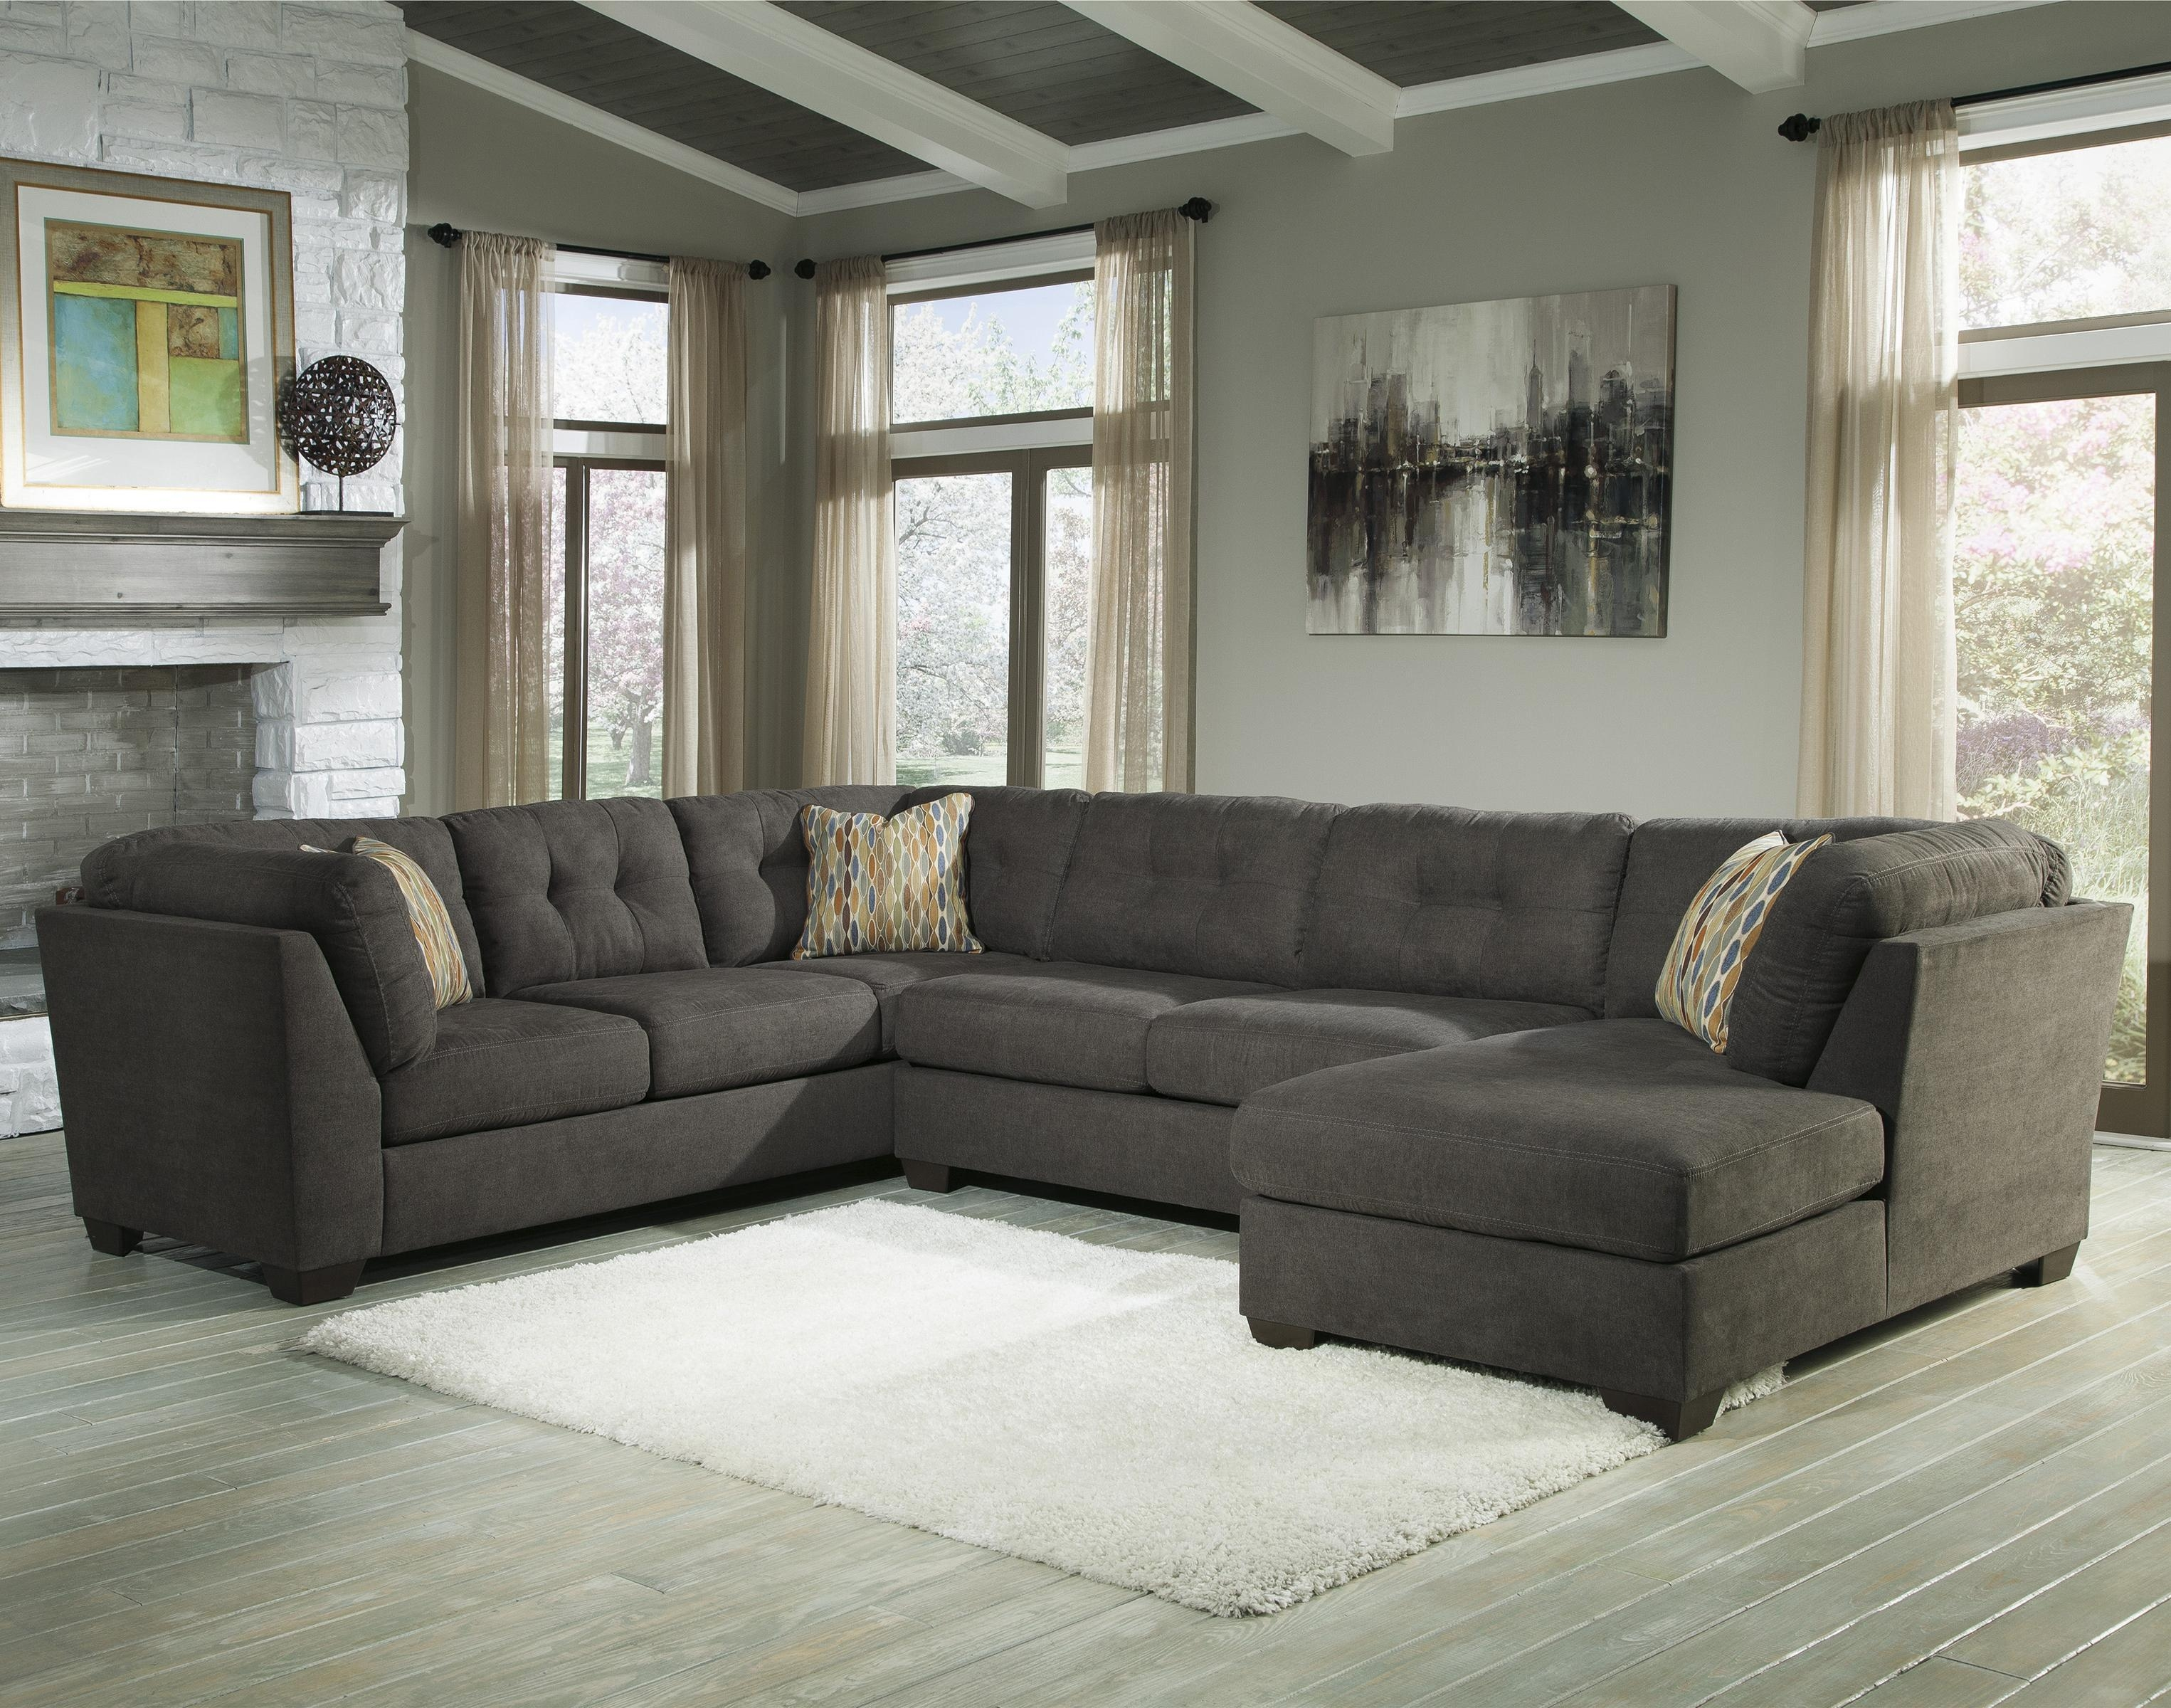 Benchcraft Delta City – Steel 3 Piece Modular Sectional With Right Pertaining To Individual Piece Sectional Sofas (View 5 of 20)